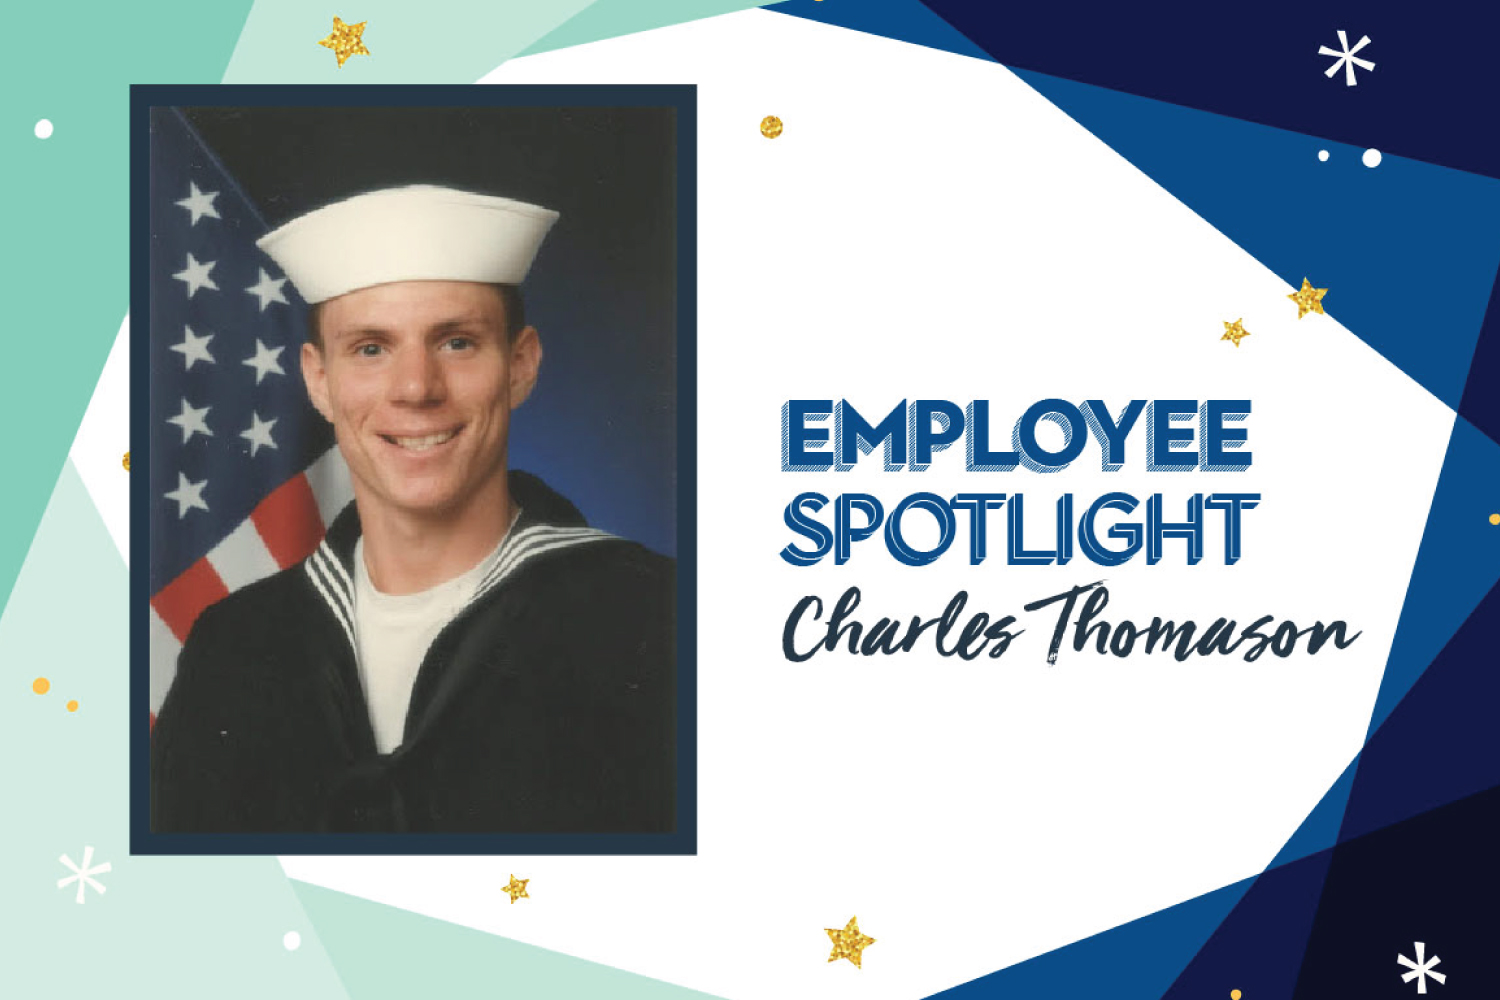 Employee Spotlight: Charles Thomason